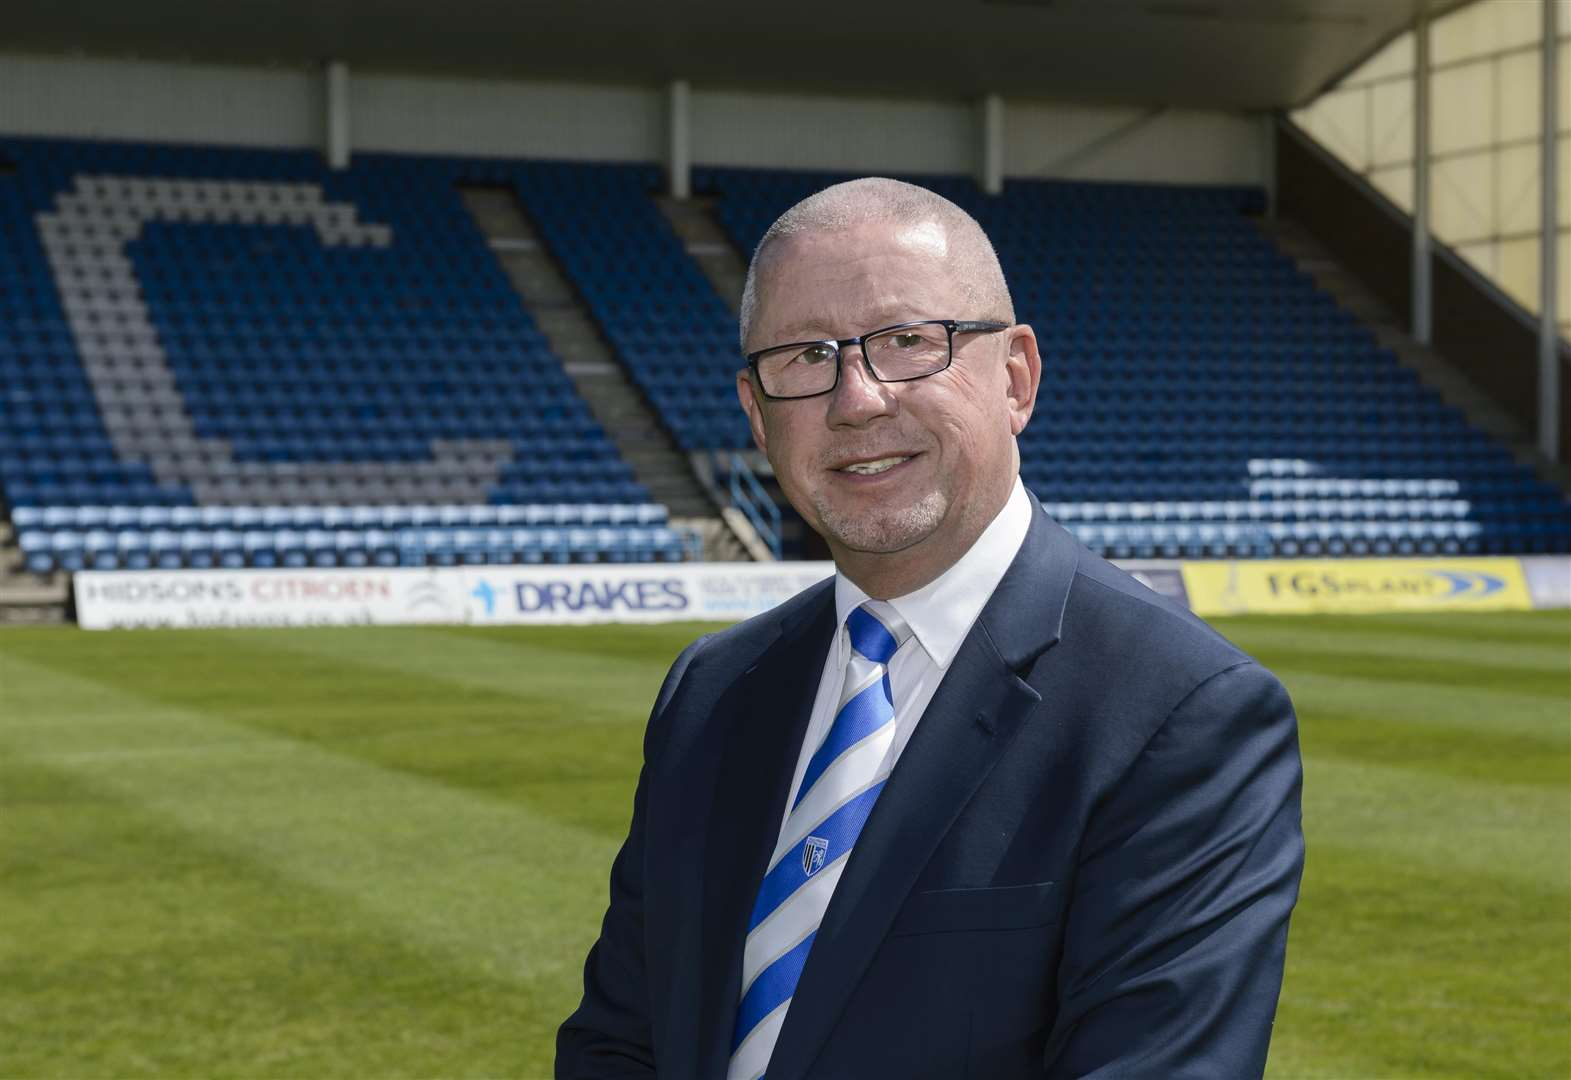 Gills deal should not be political football says chairman